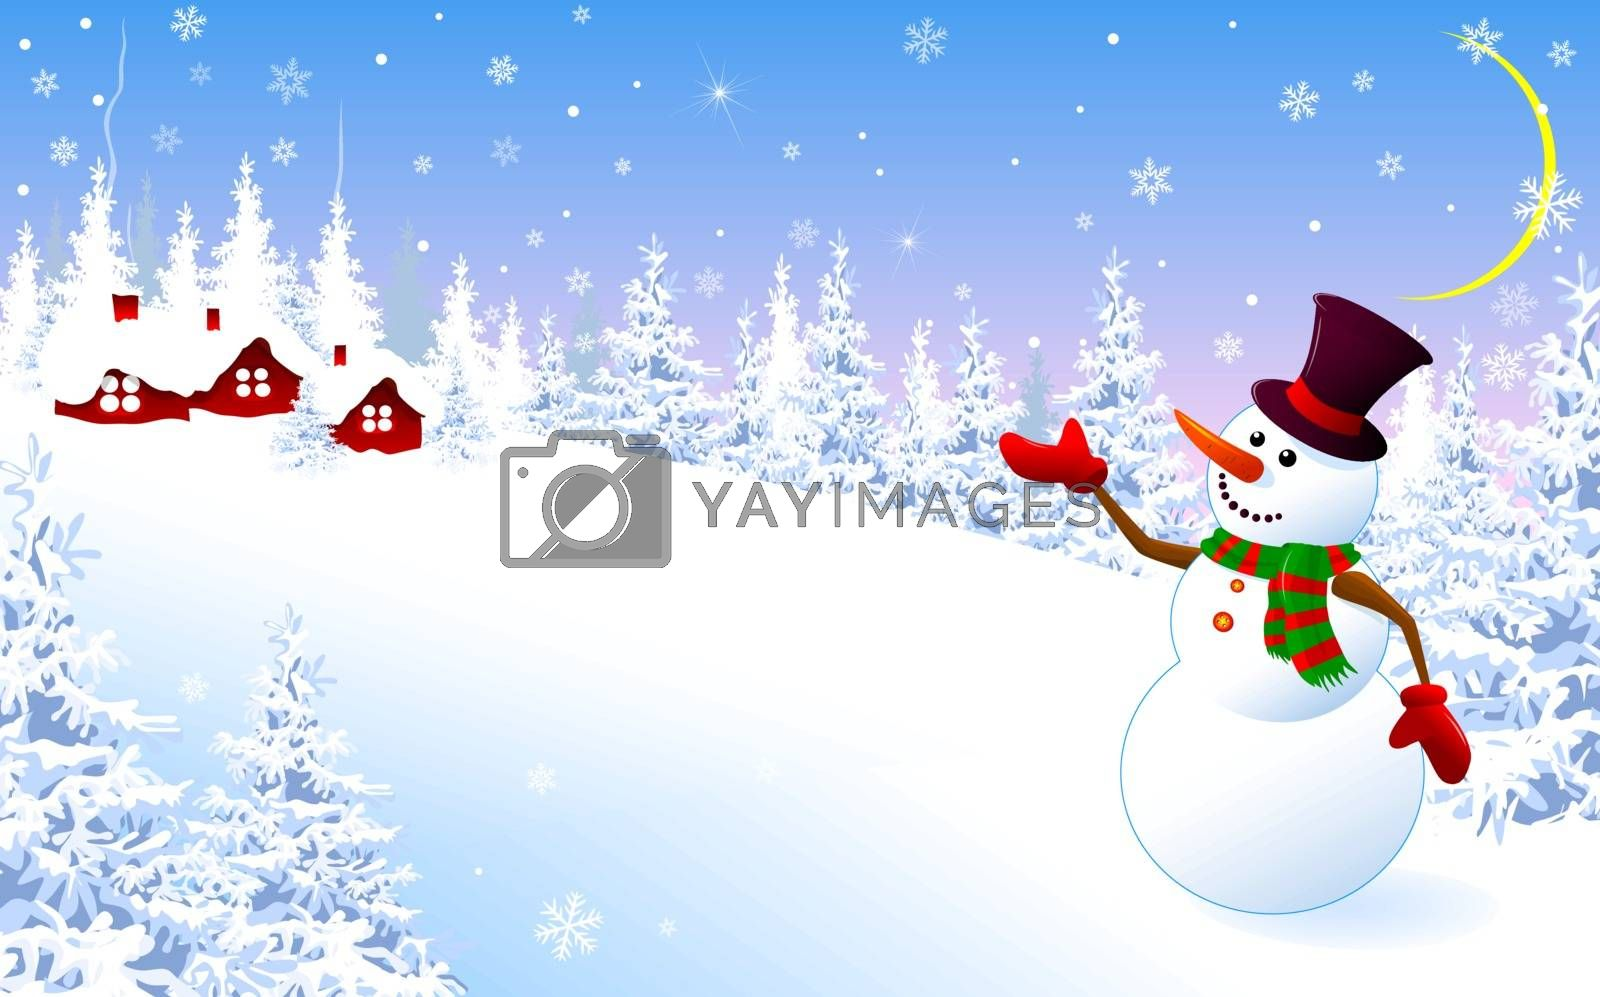 A snowman in a hat welcomes on a winter background. Snowman on the background of the village, winter landscape.